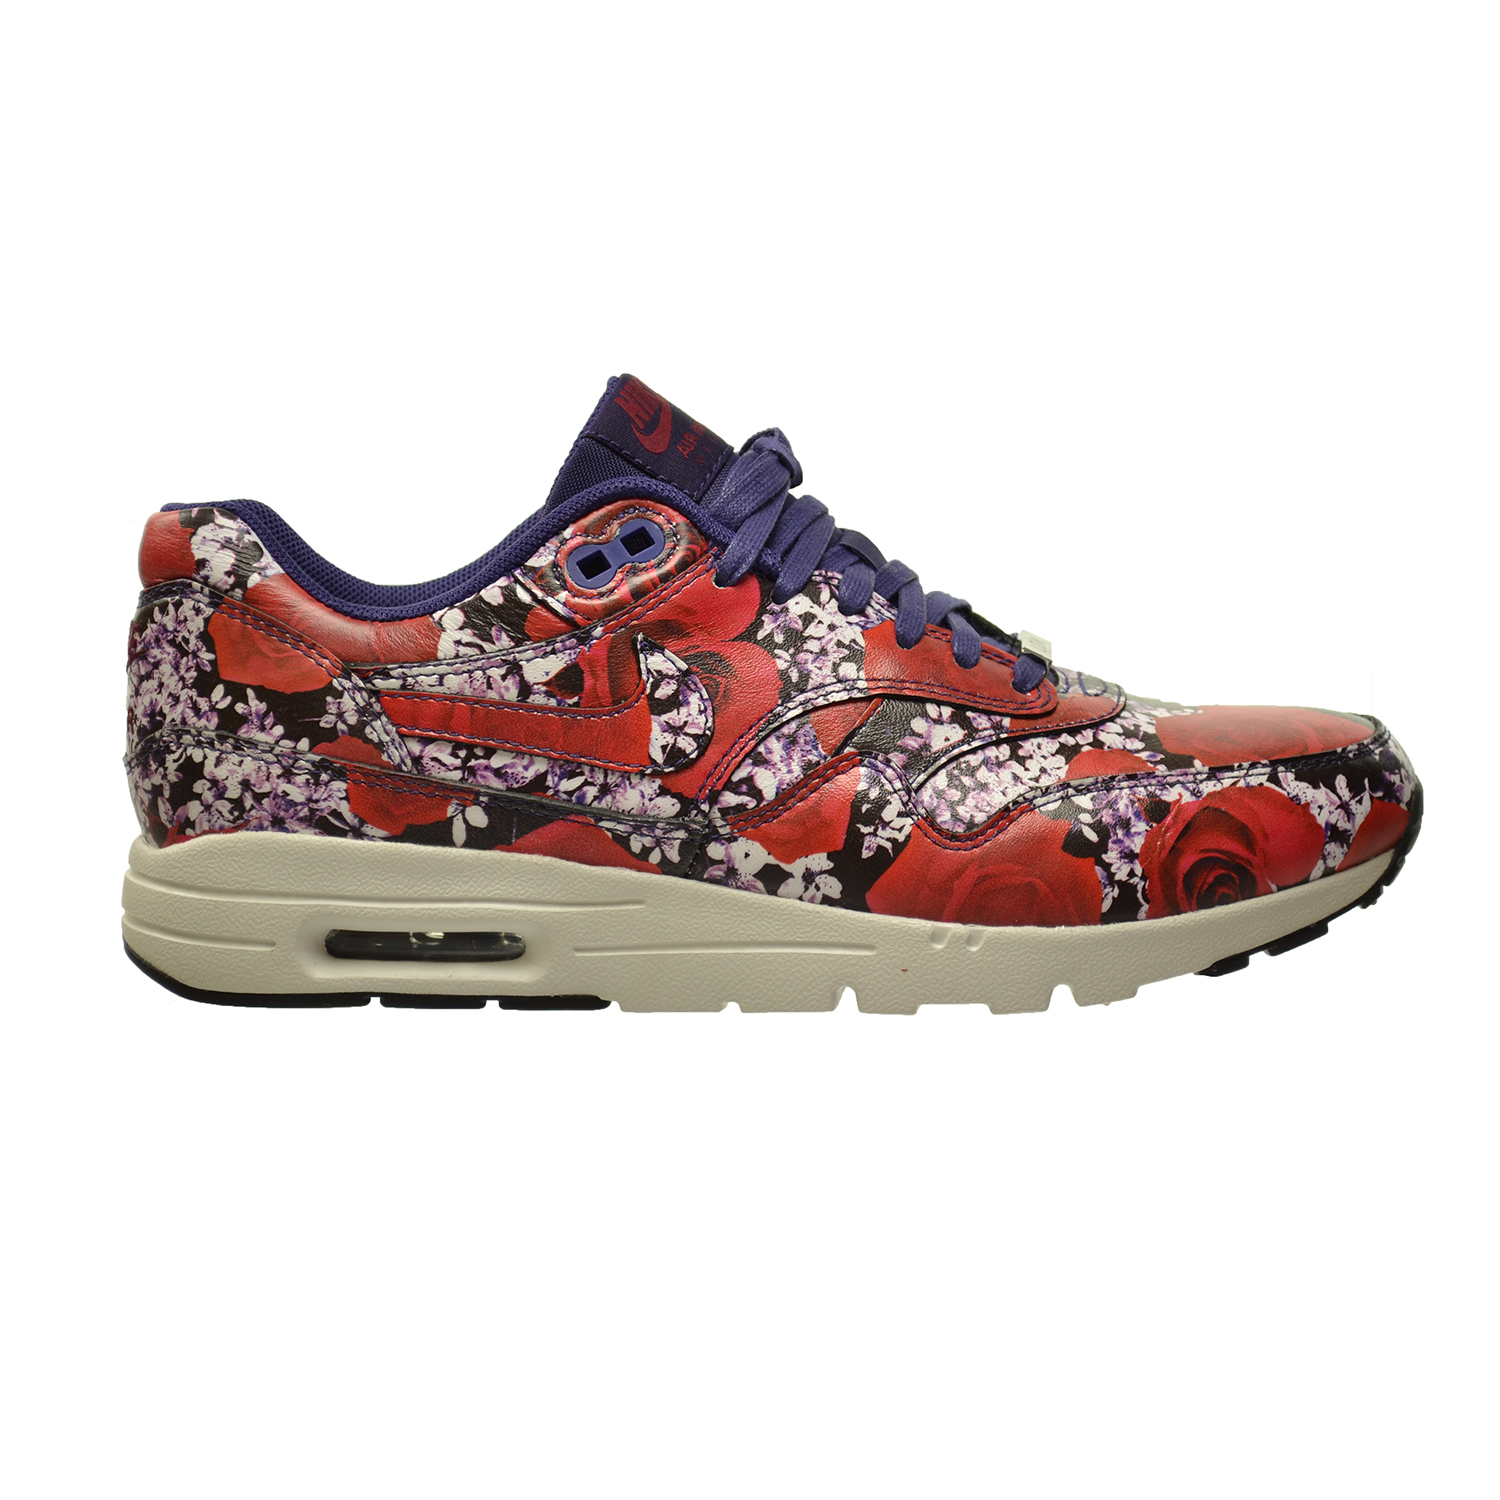 "Nike Air Max 1 Ultra LOTC QS ""London"" Women's Shoes Ink/I..."